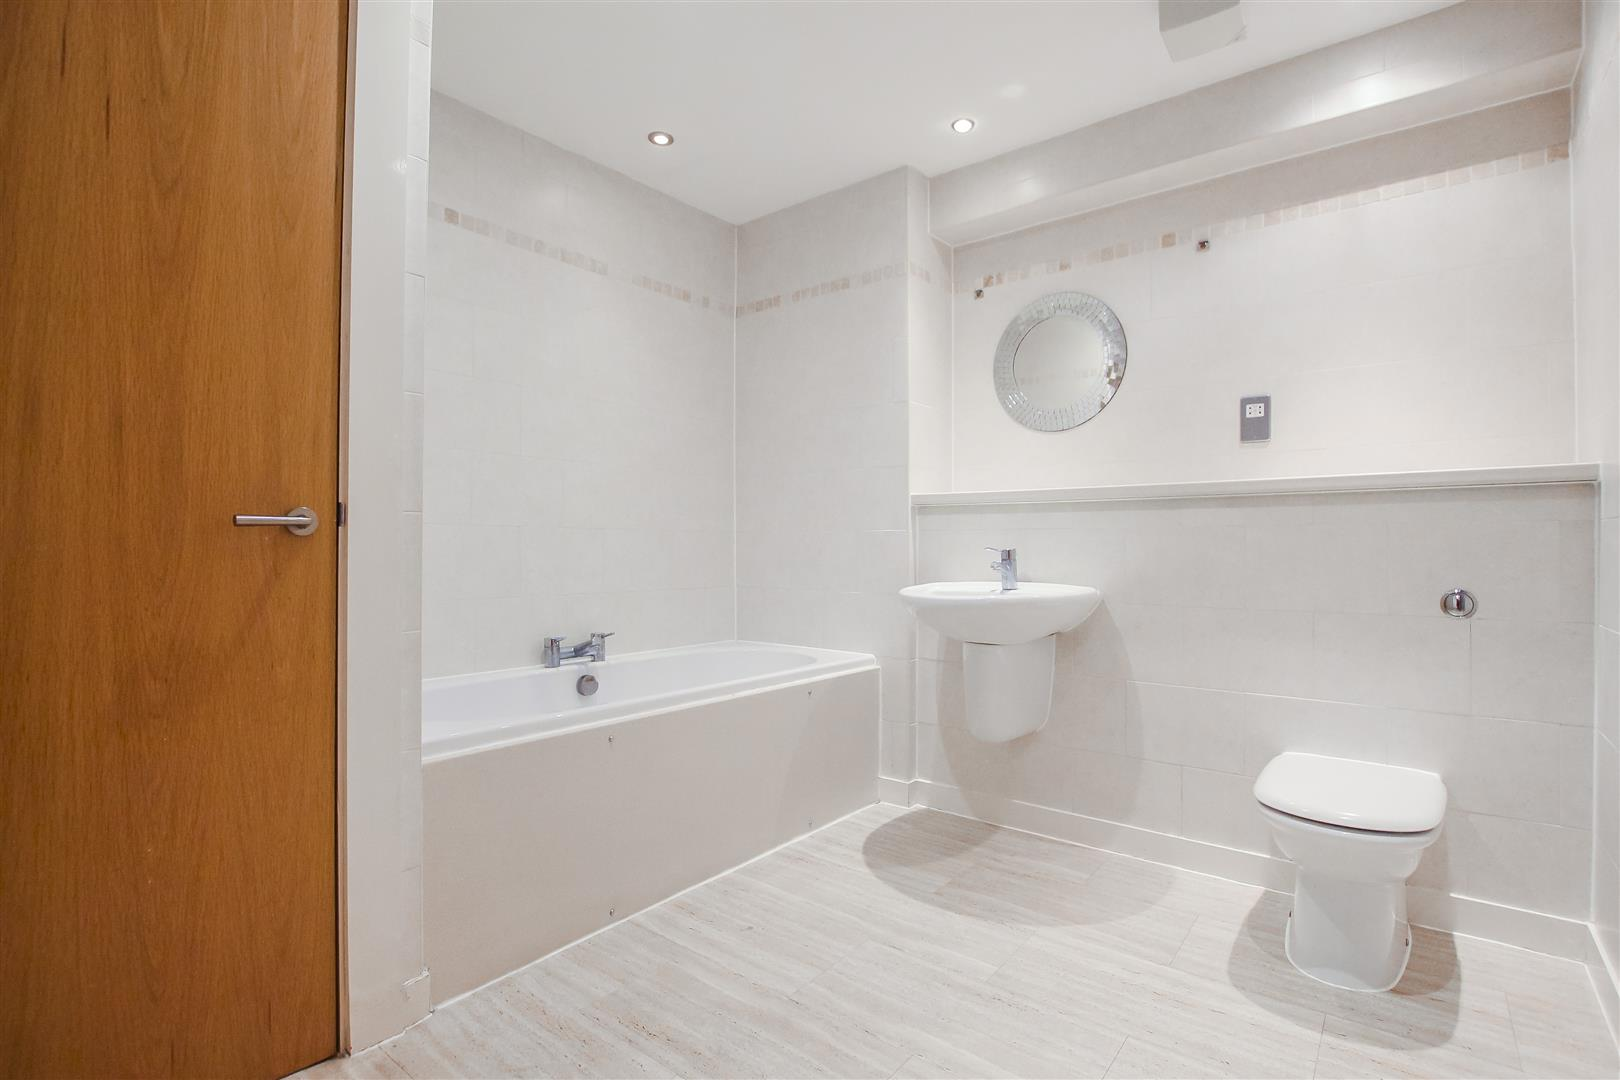 2 Bedroom Apartment For Sale - Bathroom